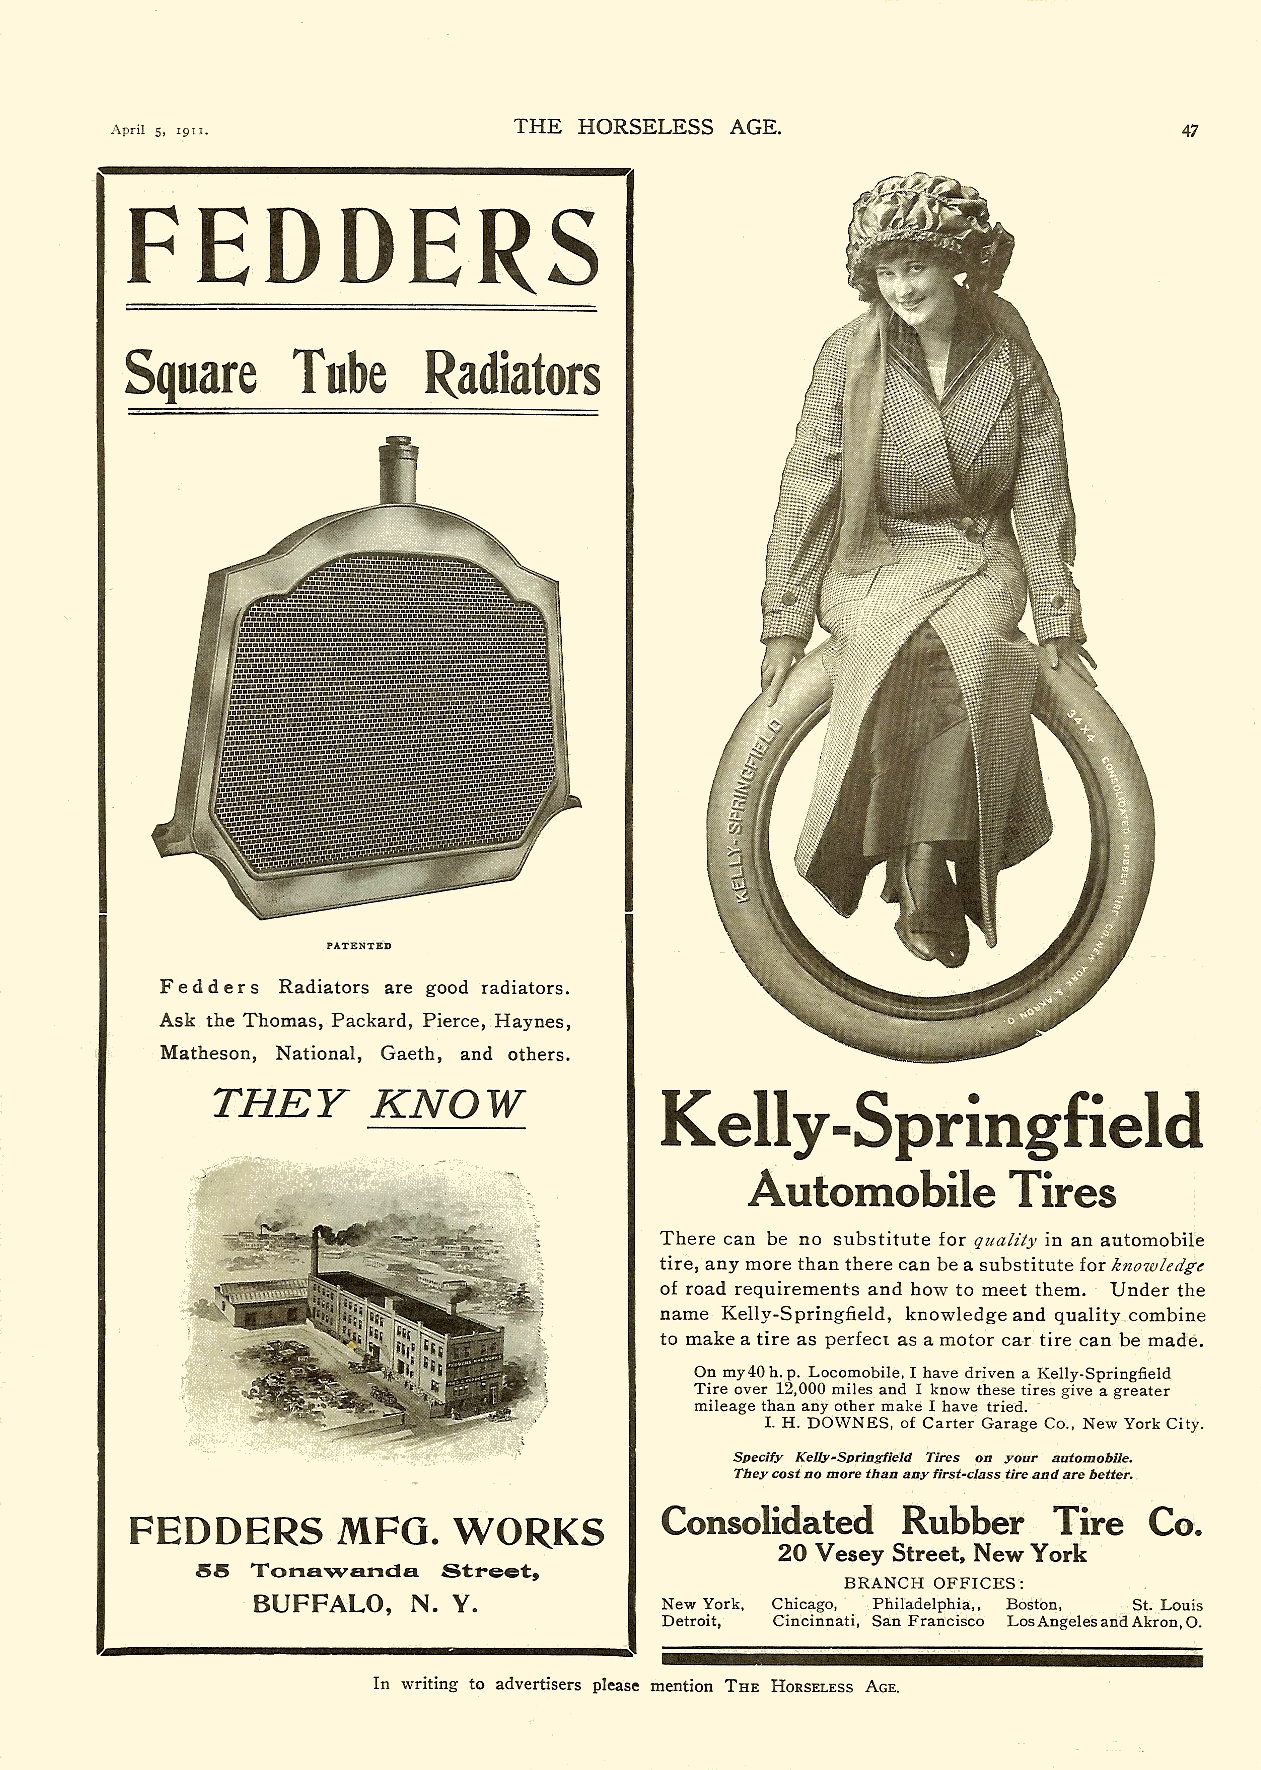 1911 4 5 Kelly-Springfield Automobile Tires THE HORSELESS AGE Vol. 27, No. 14 April 5, 1911 9″x12″ page 47